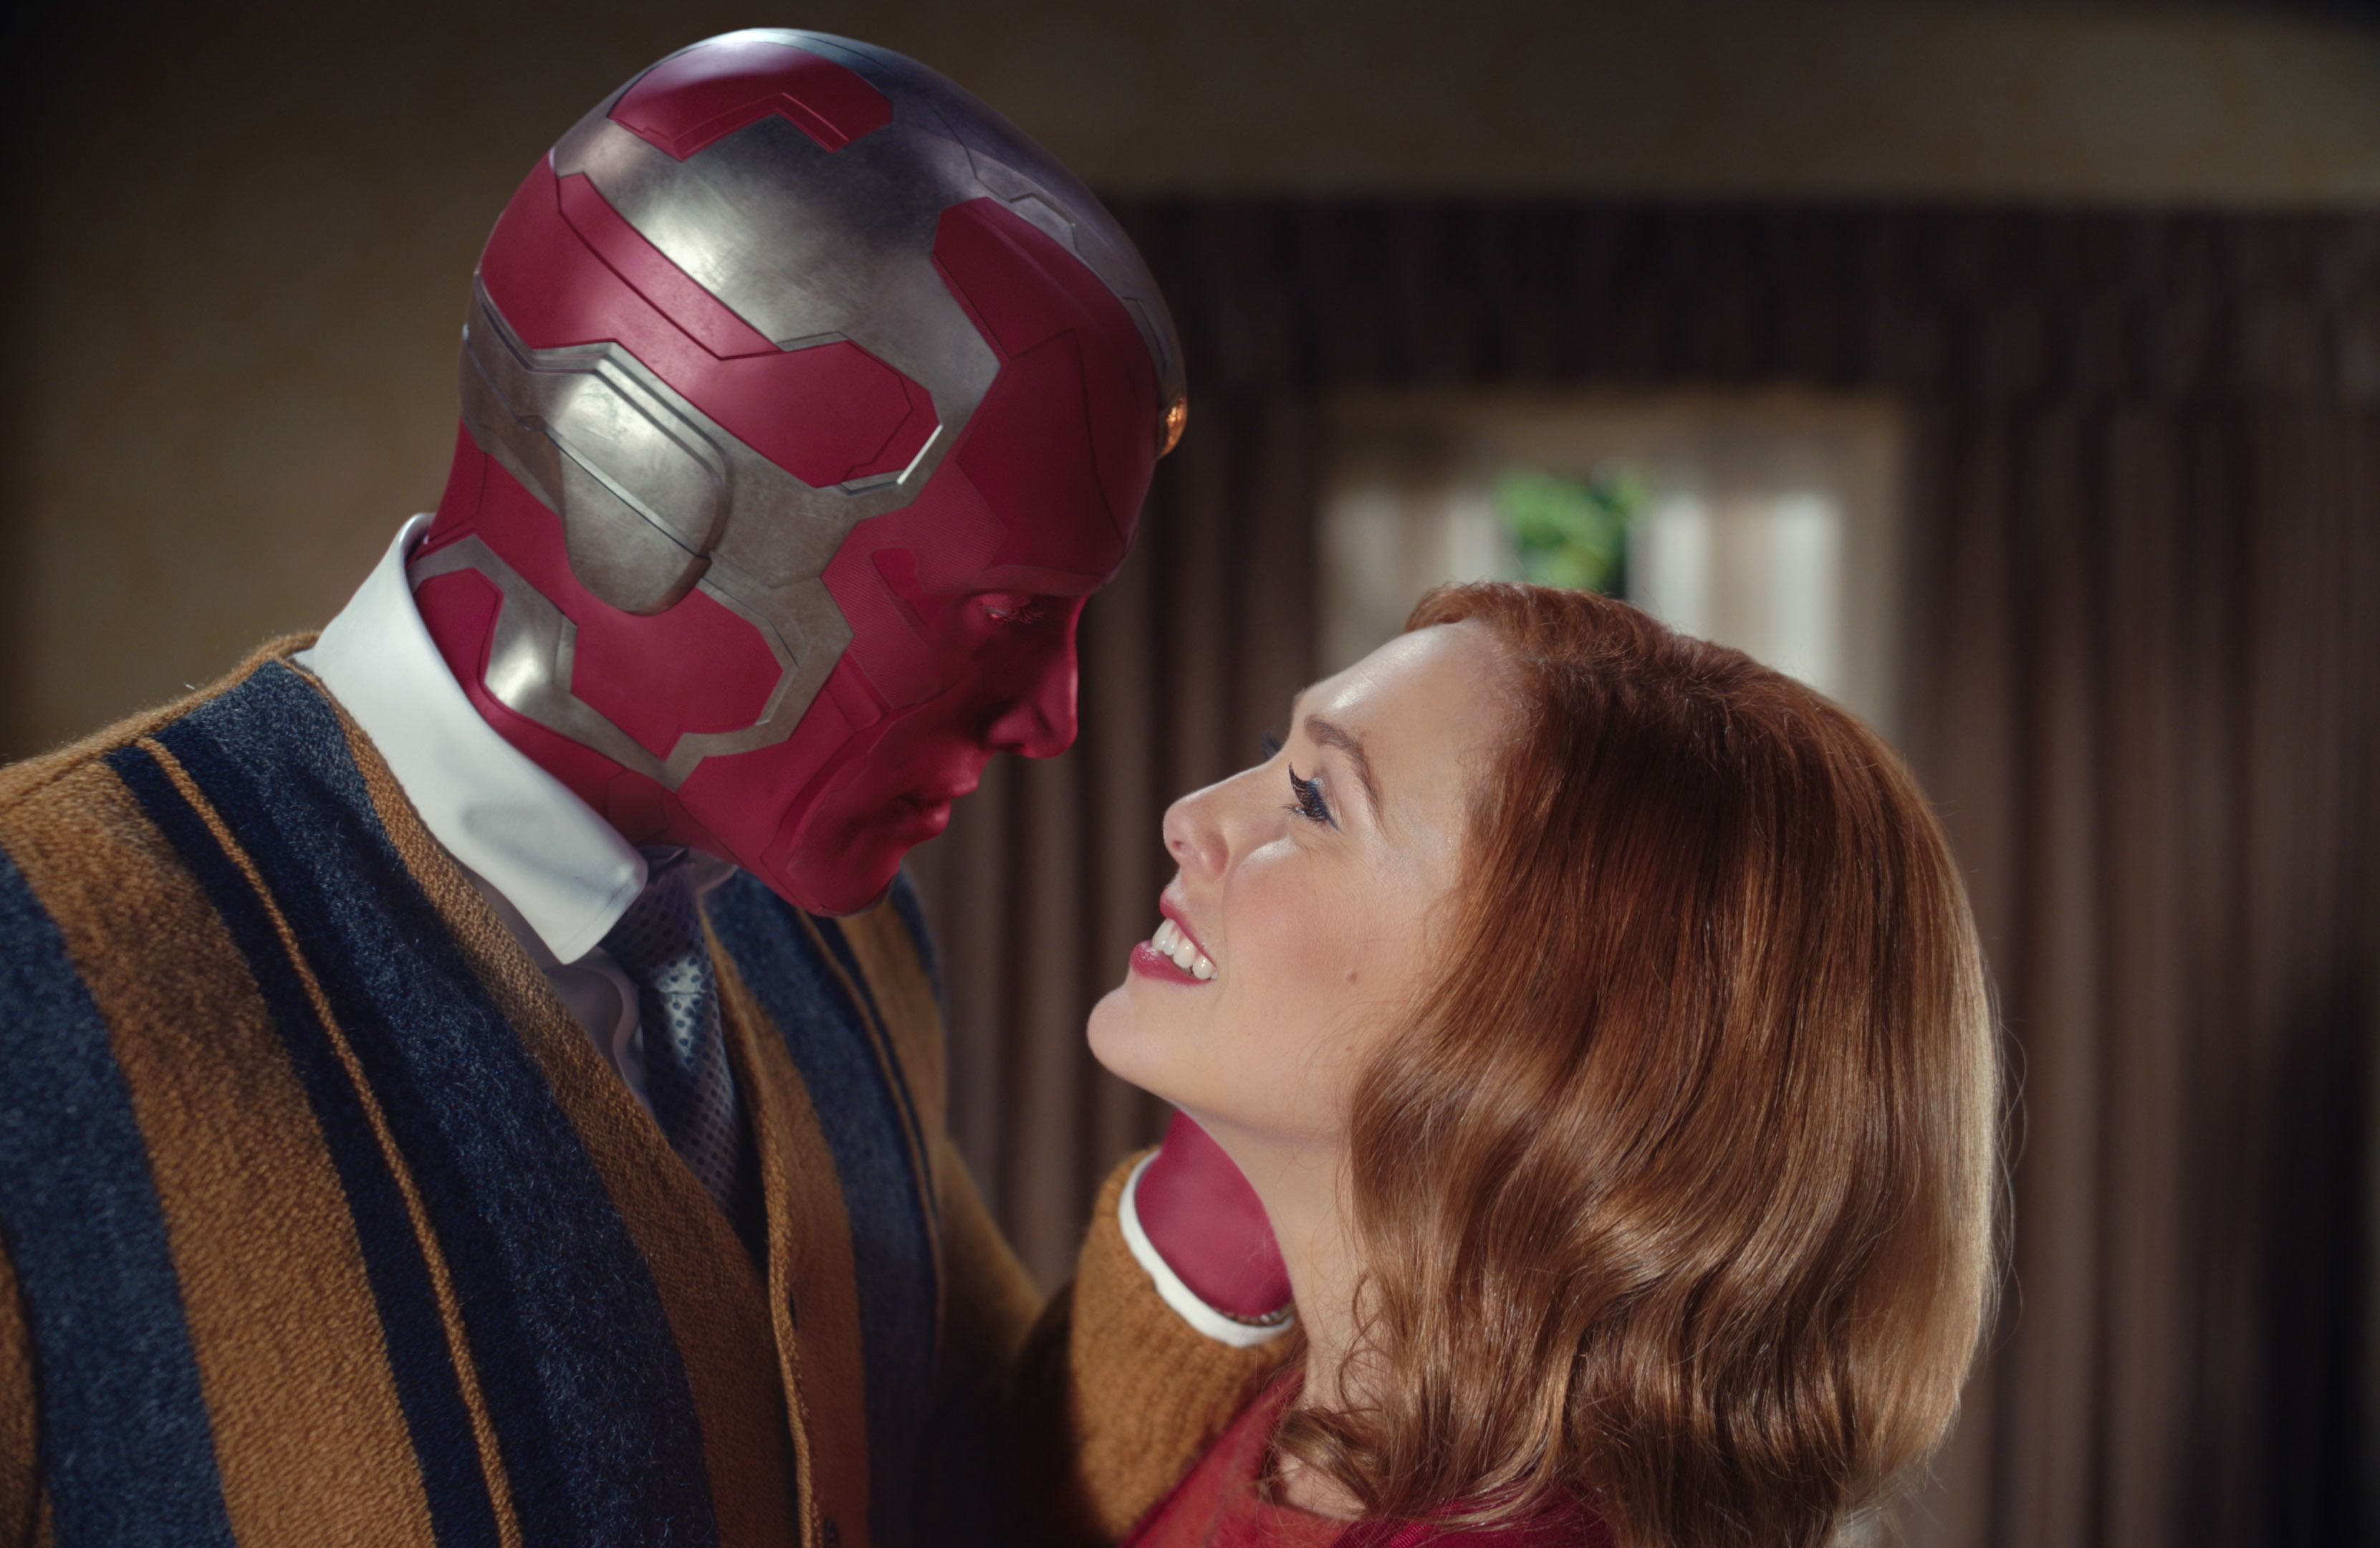 How WandaVision Proves Marvel Can Tell a Love Story That Matters   Den of Geek